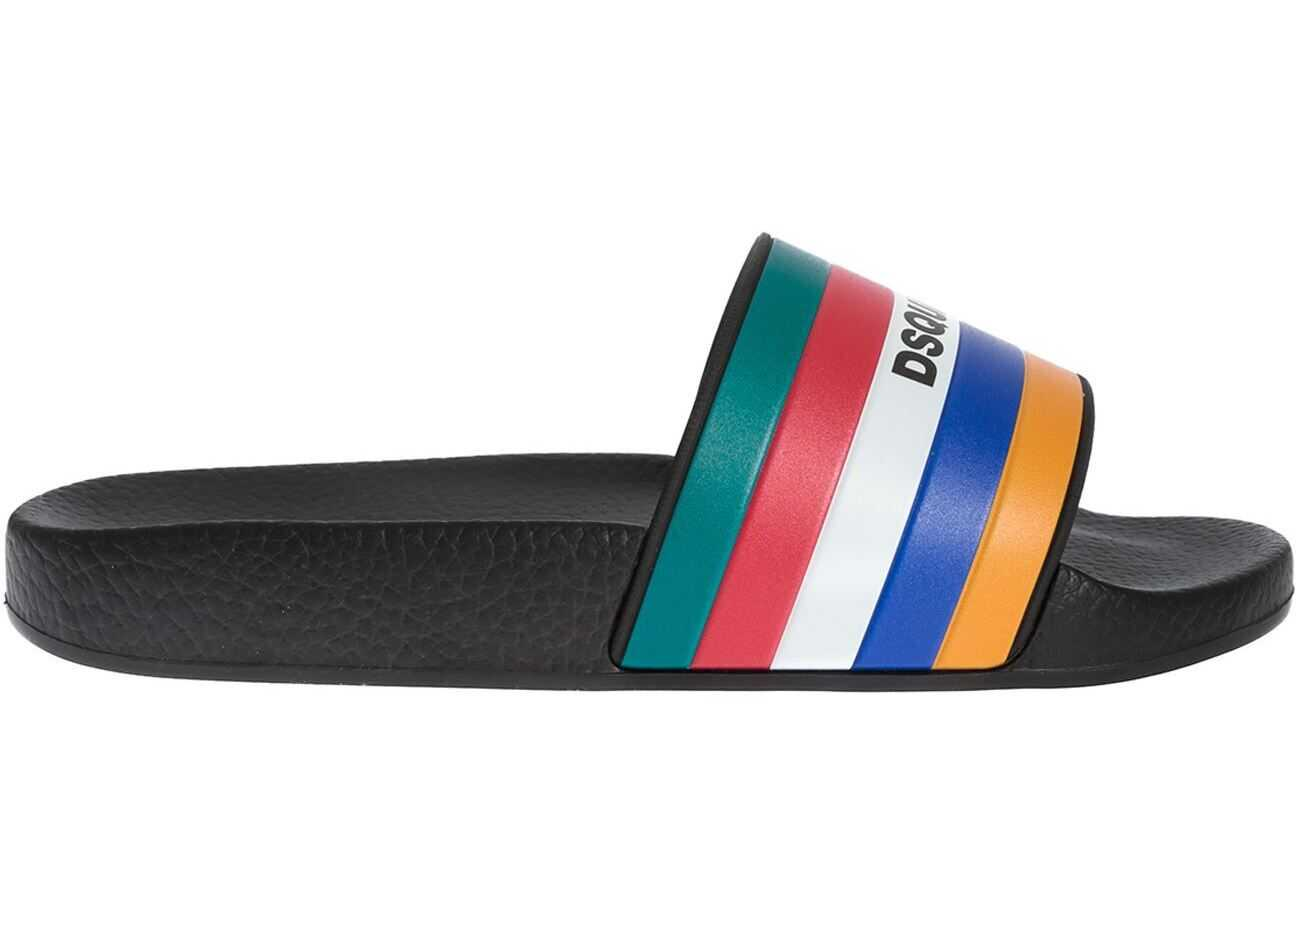 DSQUARED2 Slides In Black With Multicolor Band Black